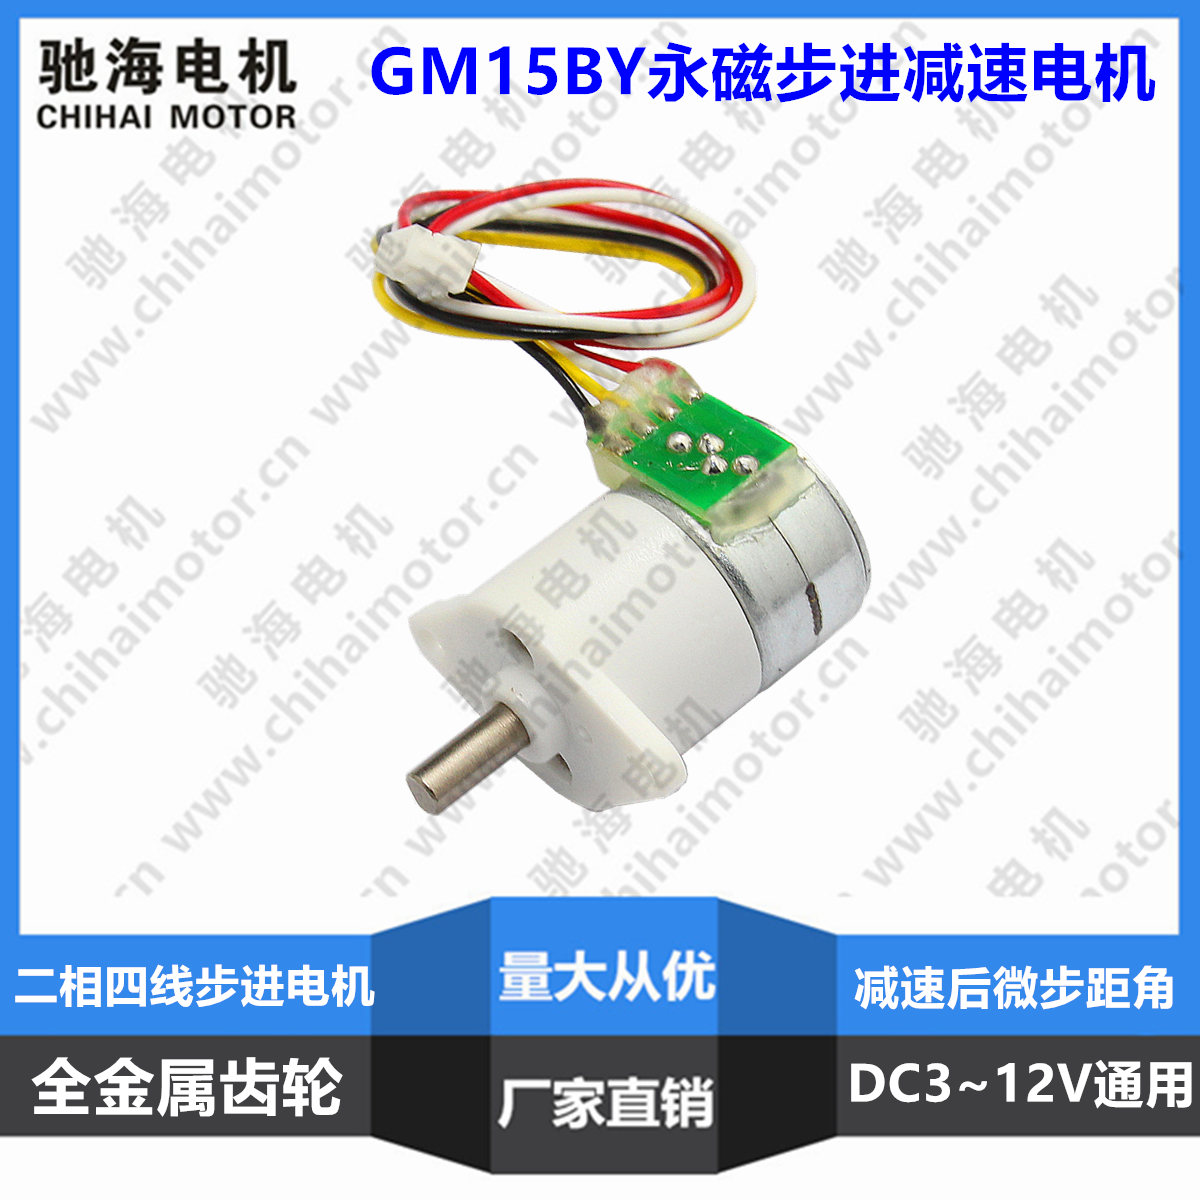 Diameter 15mm, GM12-15BY Micro Stepping Motor, 2 Phase 4 Wire Monitor, Pan Head